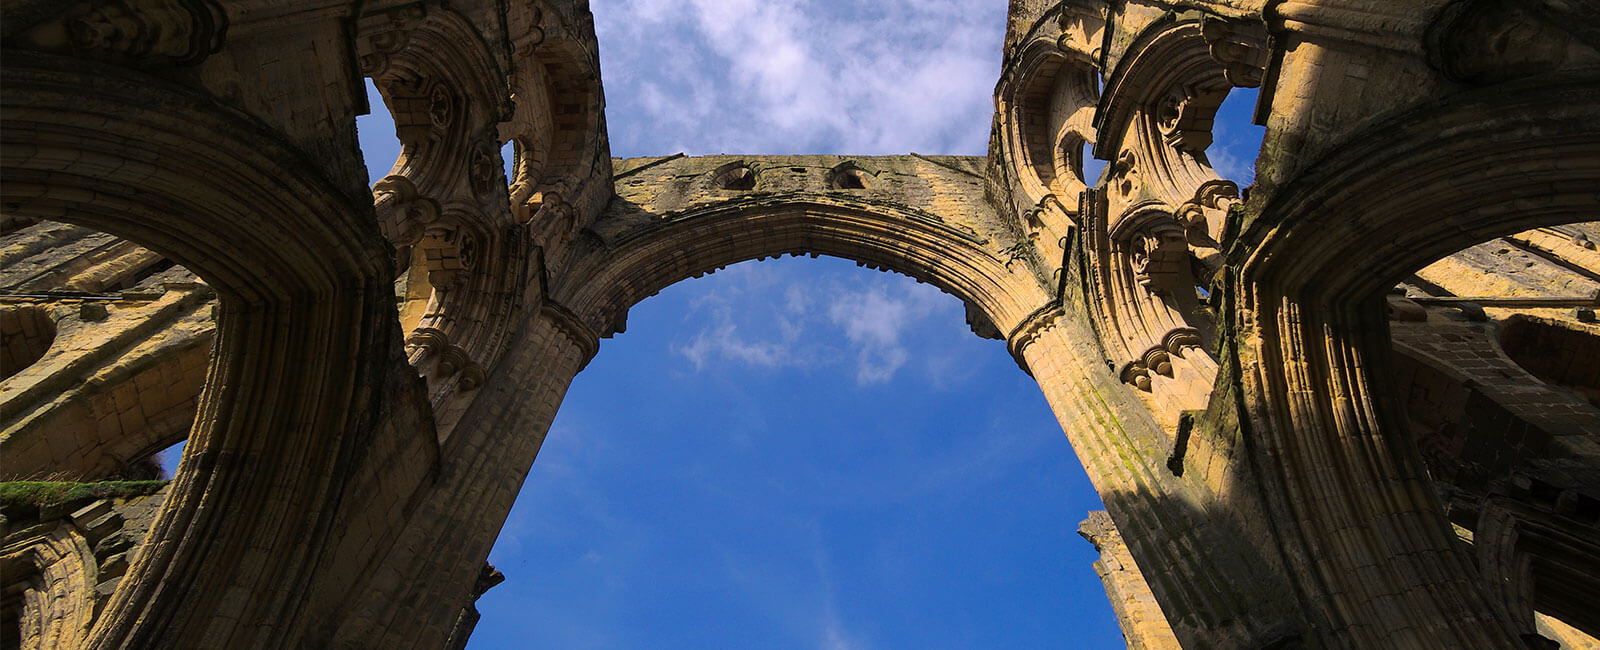 Rievaulx Abbey homepage banner